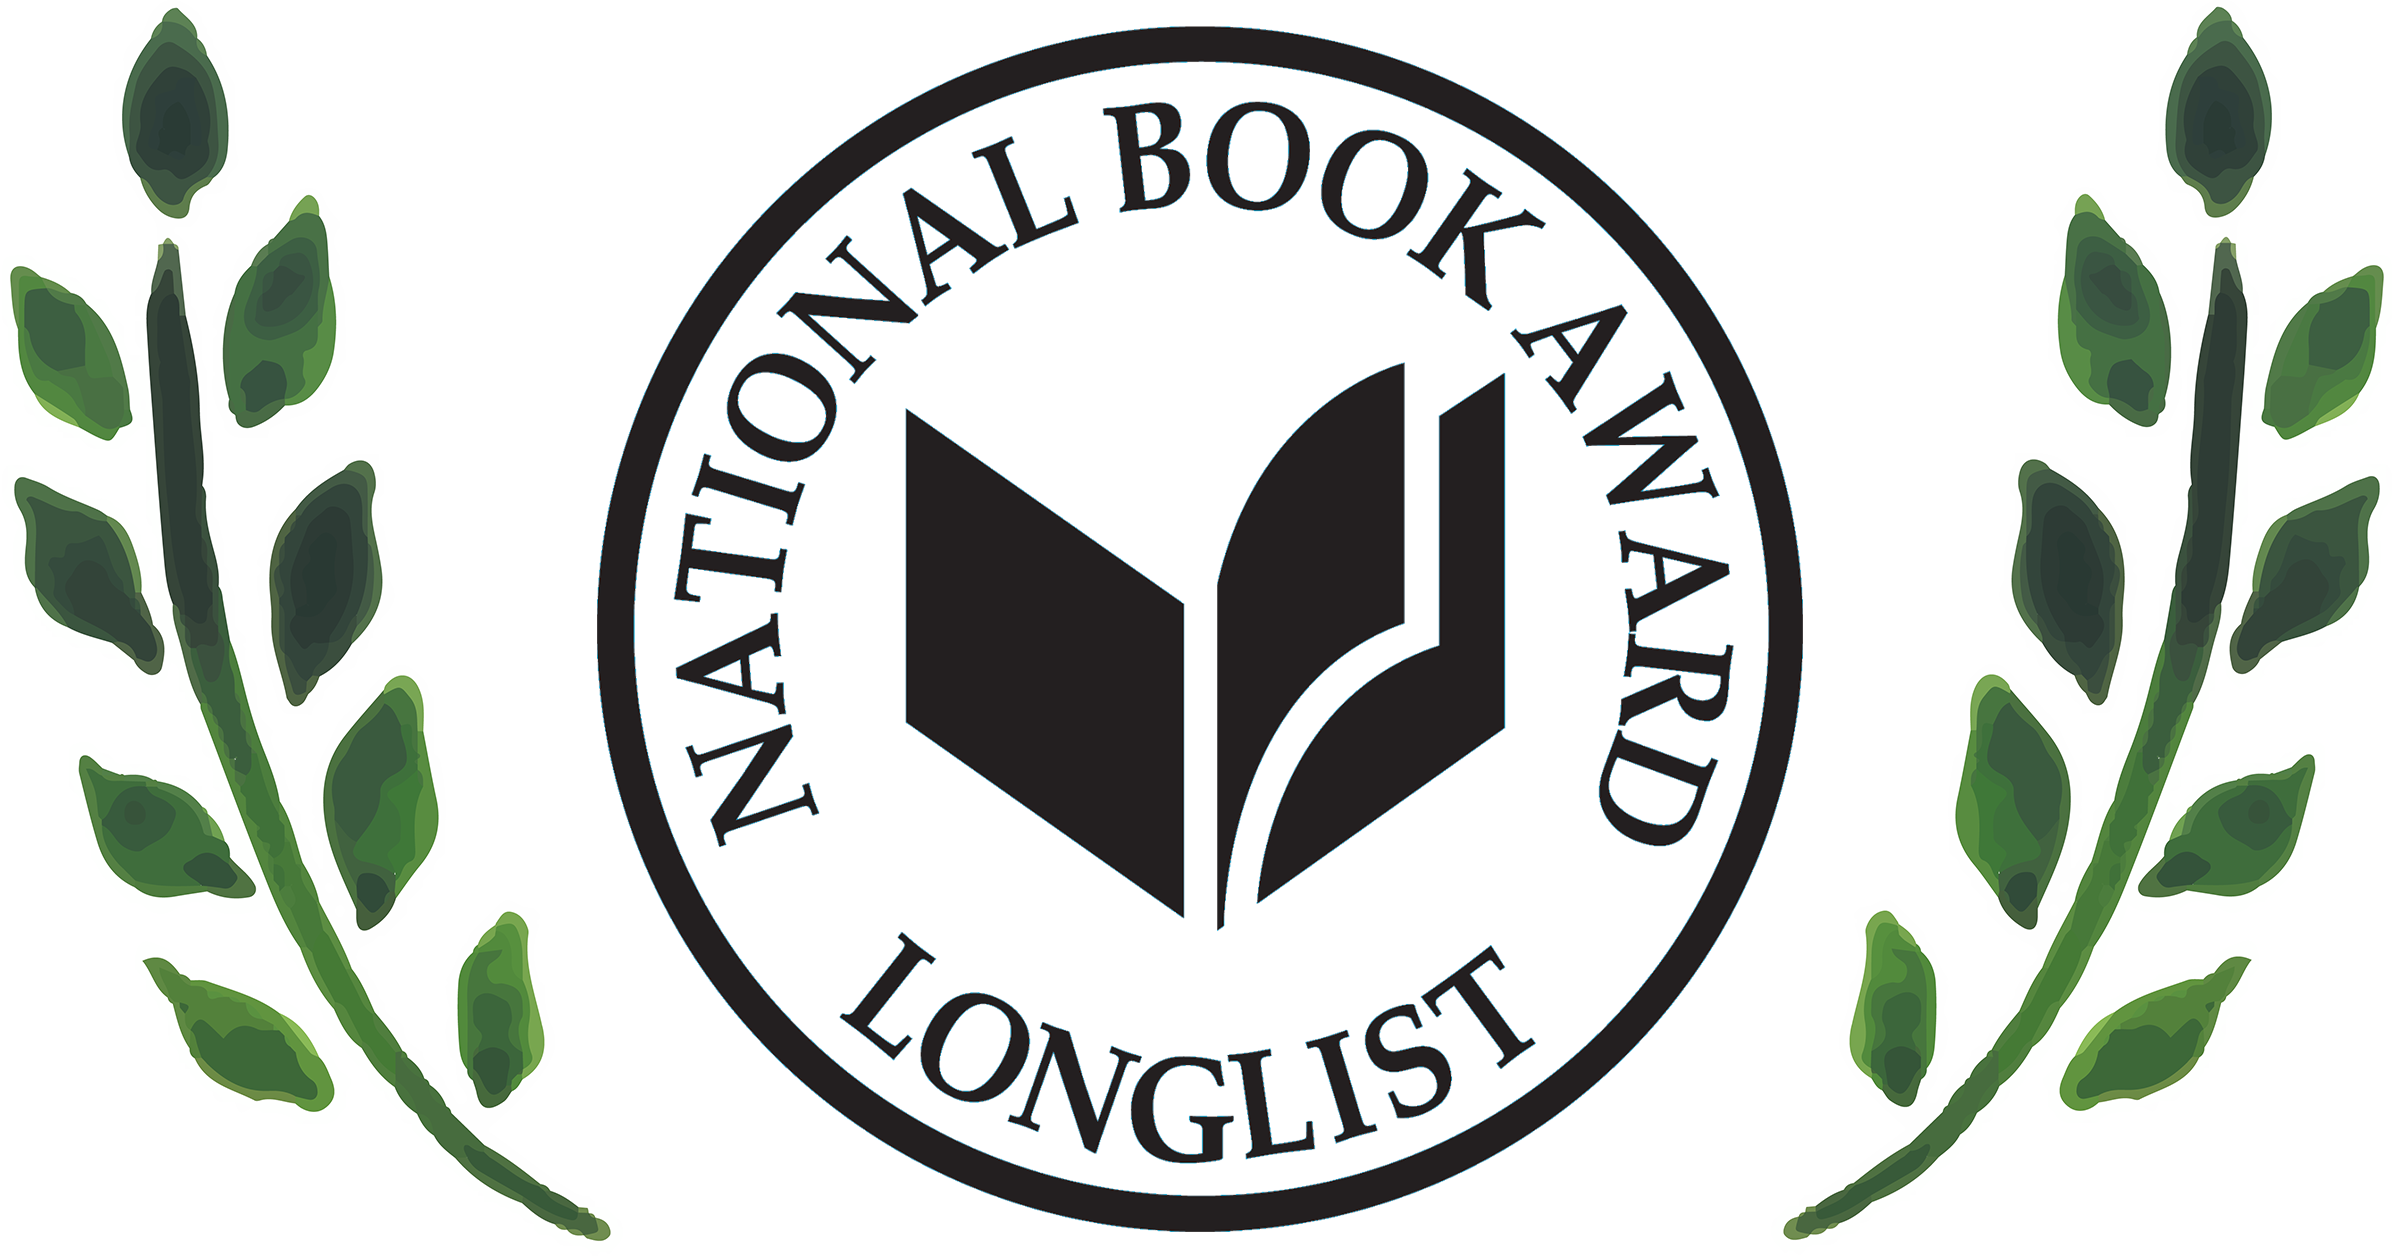 2017 National Book Award Longlist is Announced - Best Books Index